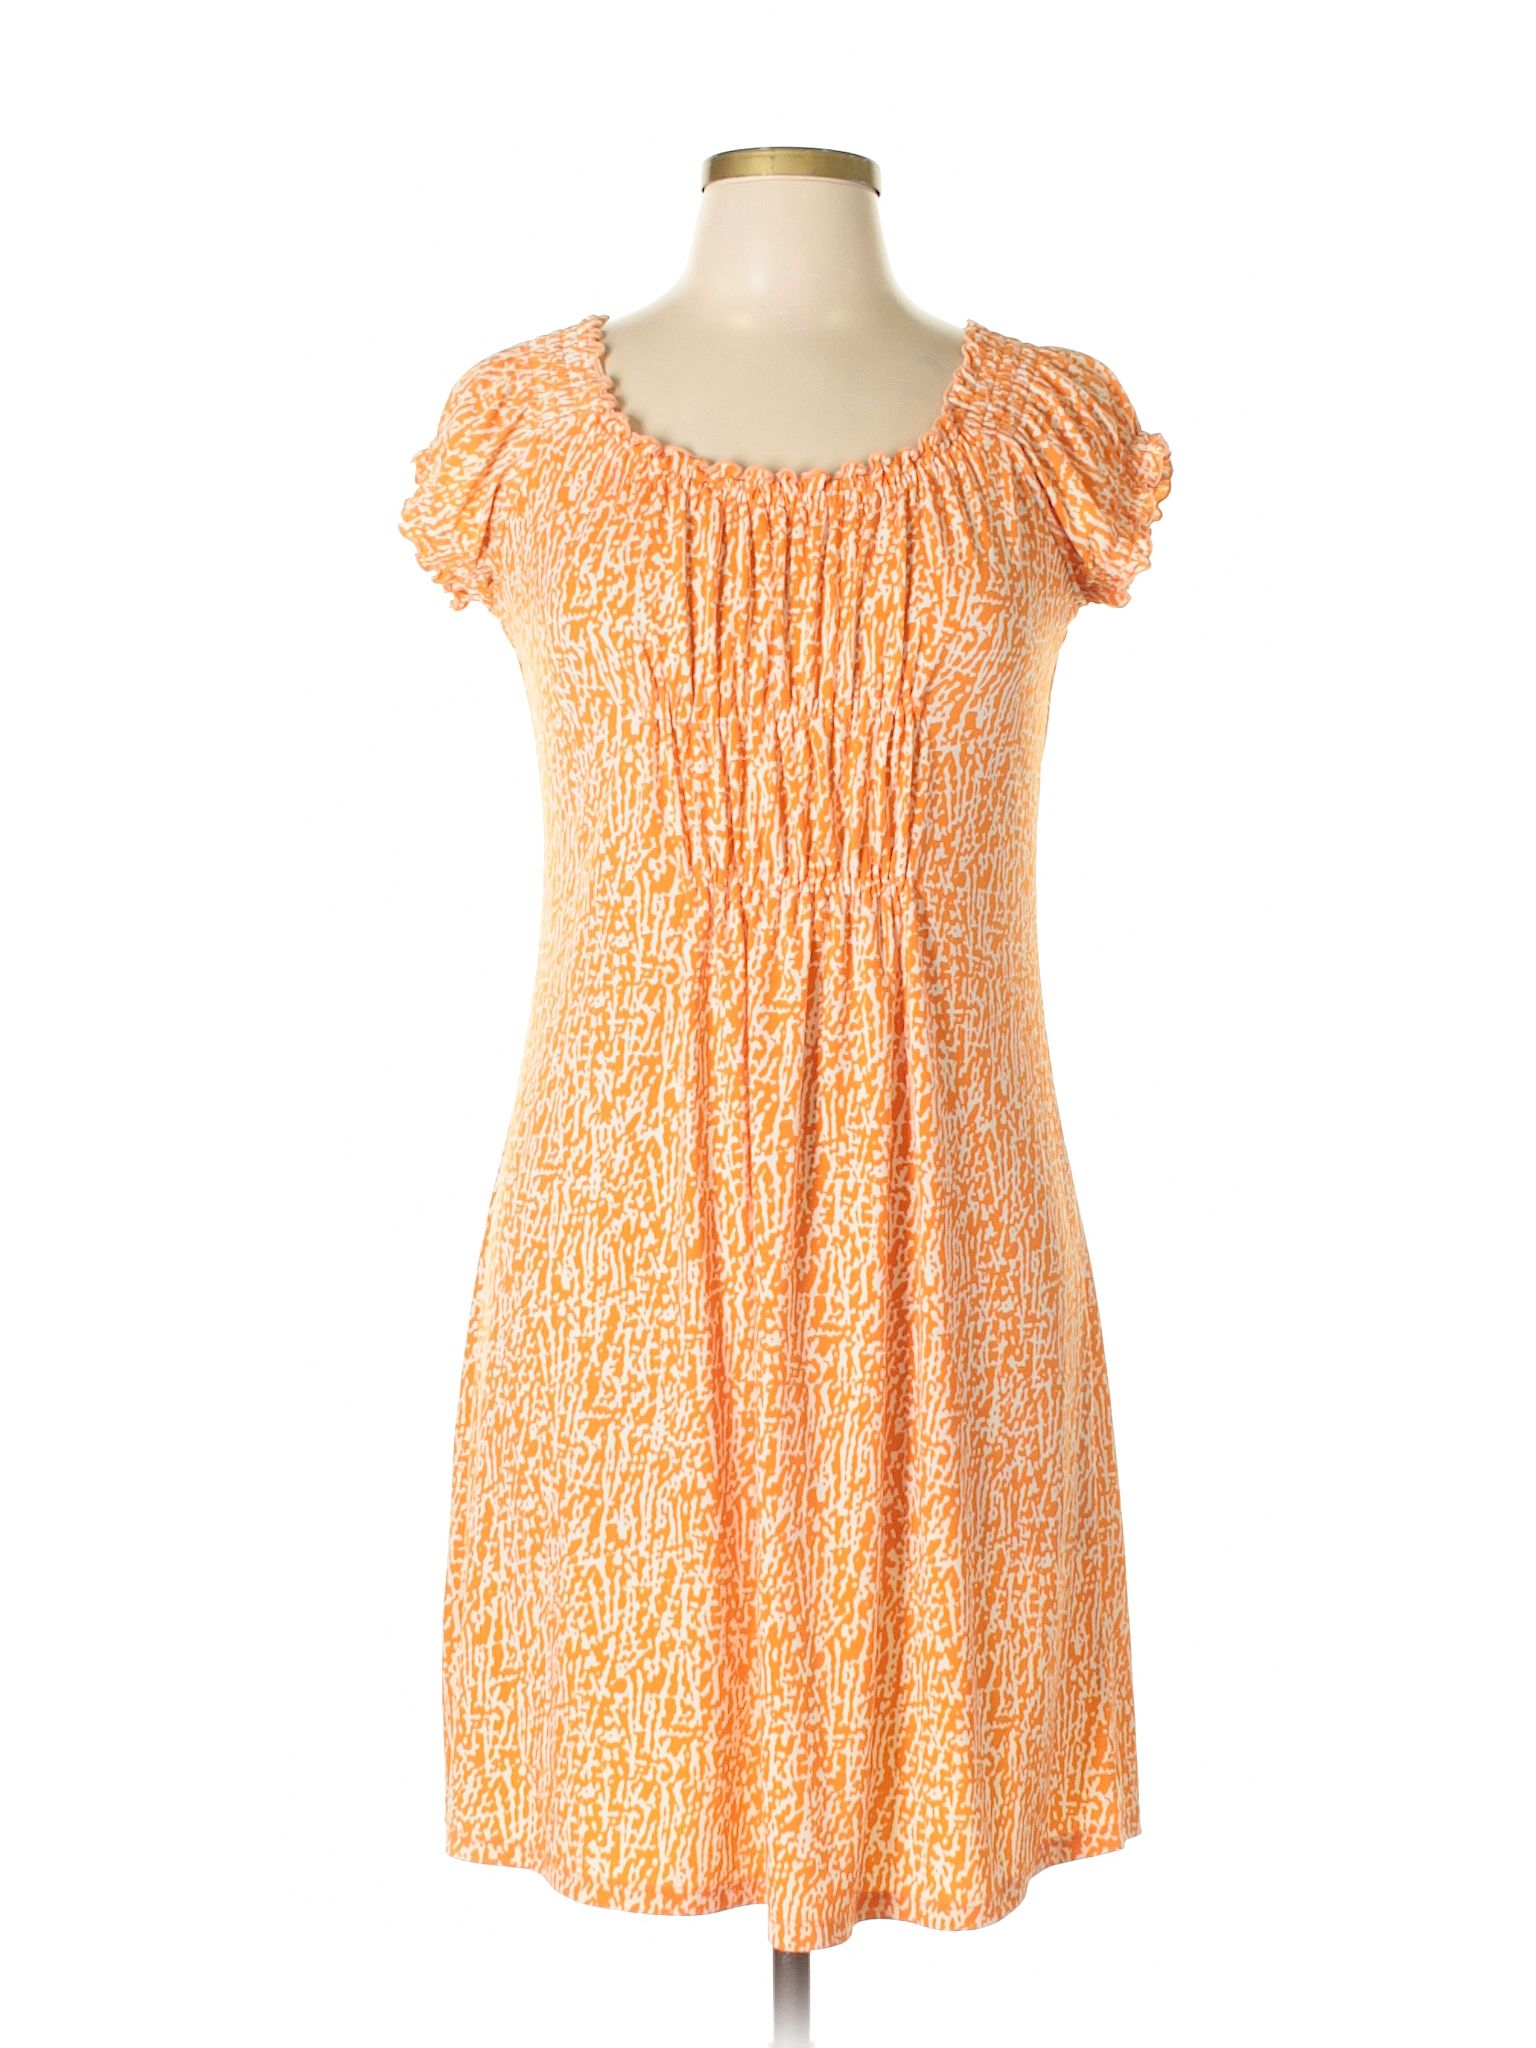 Orange dress casual  Casual Dress  Products  Pinterest  Michael kors Free shipping